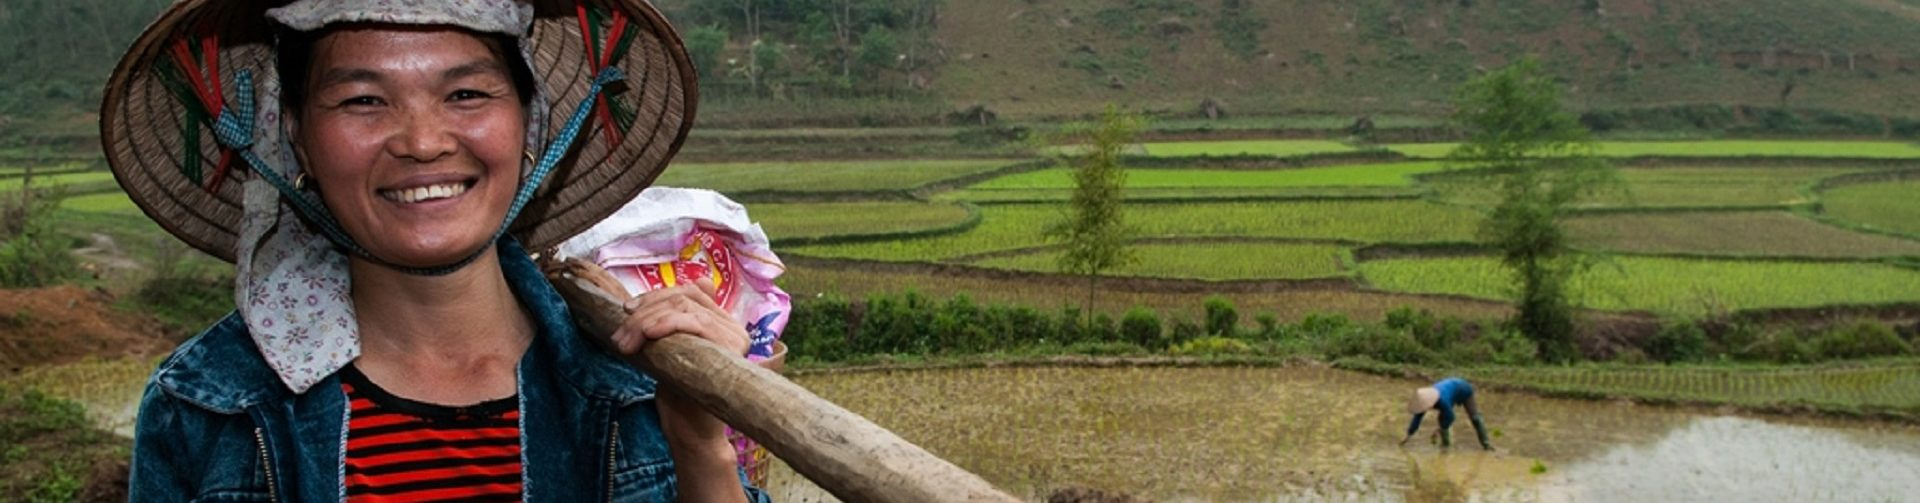 Myths about the feminization of agriculture: Implications for global food security